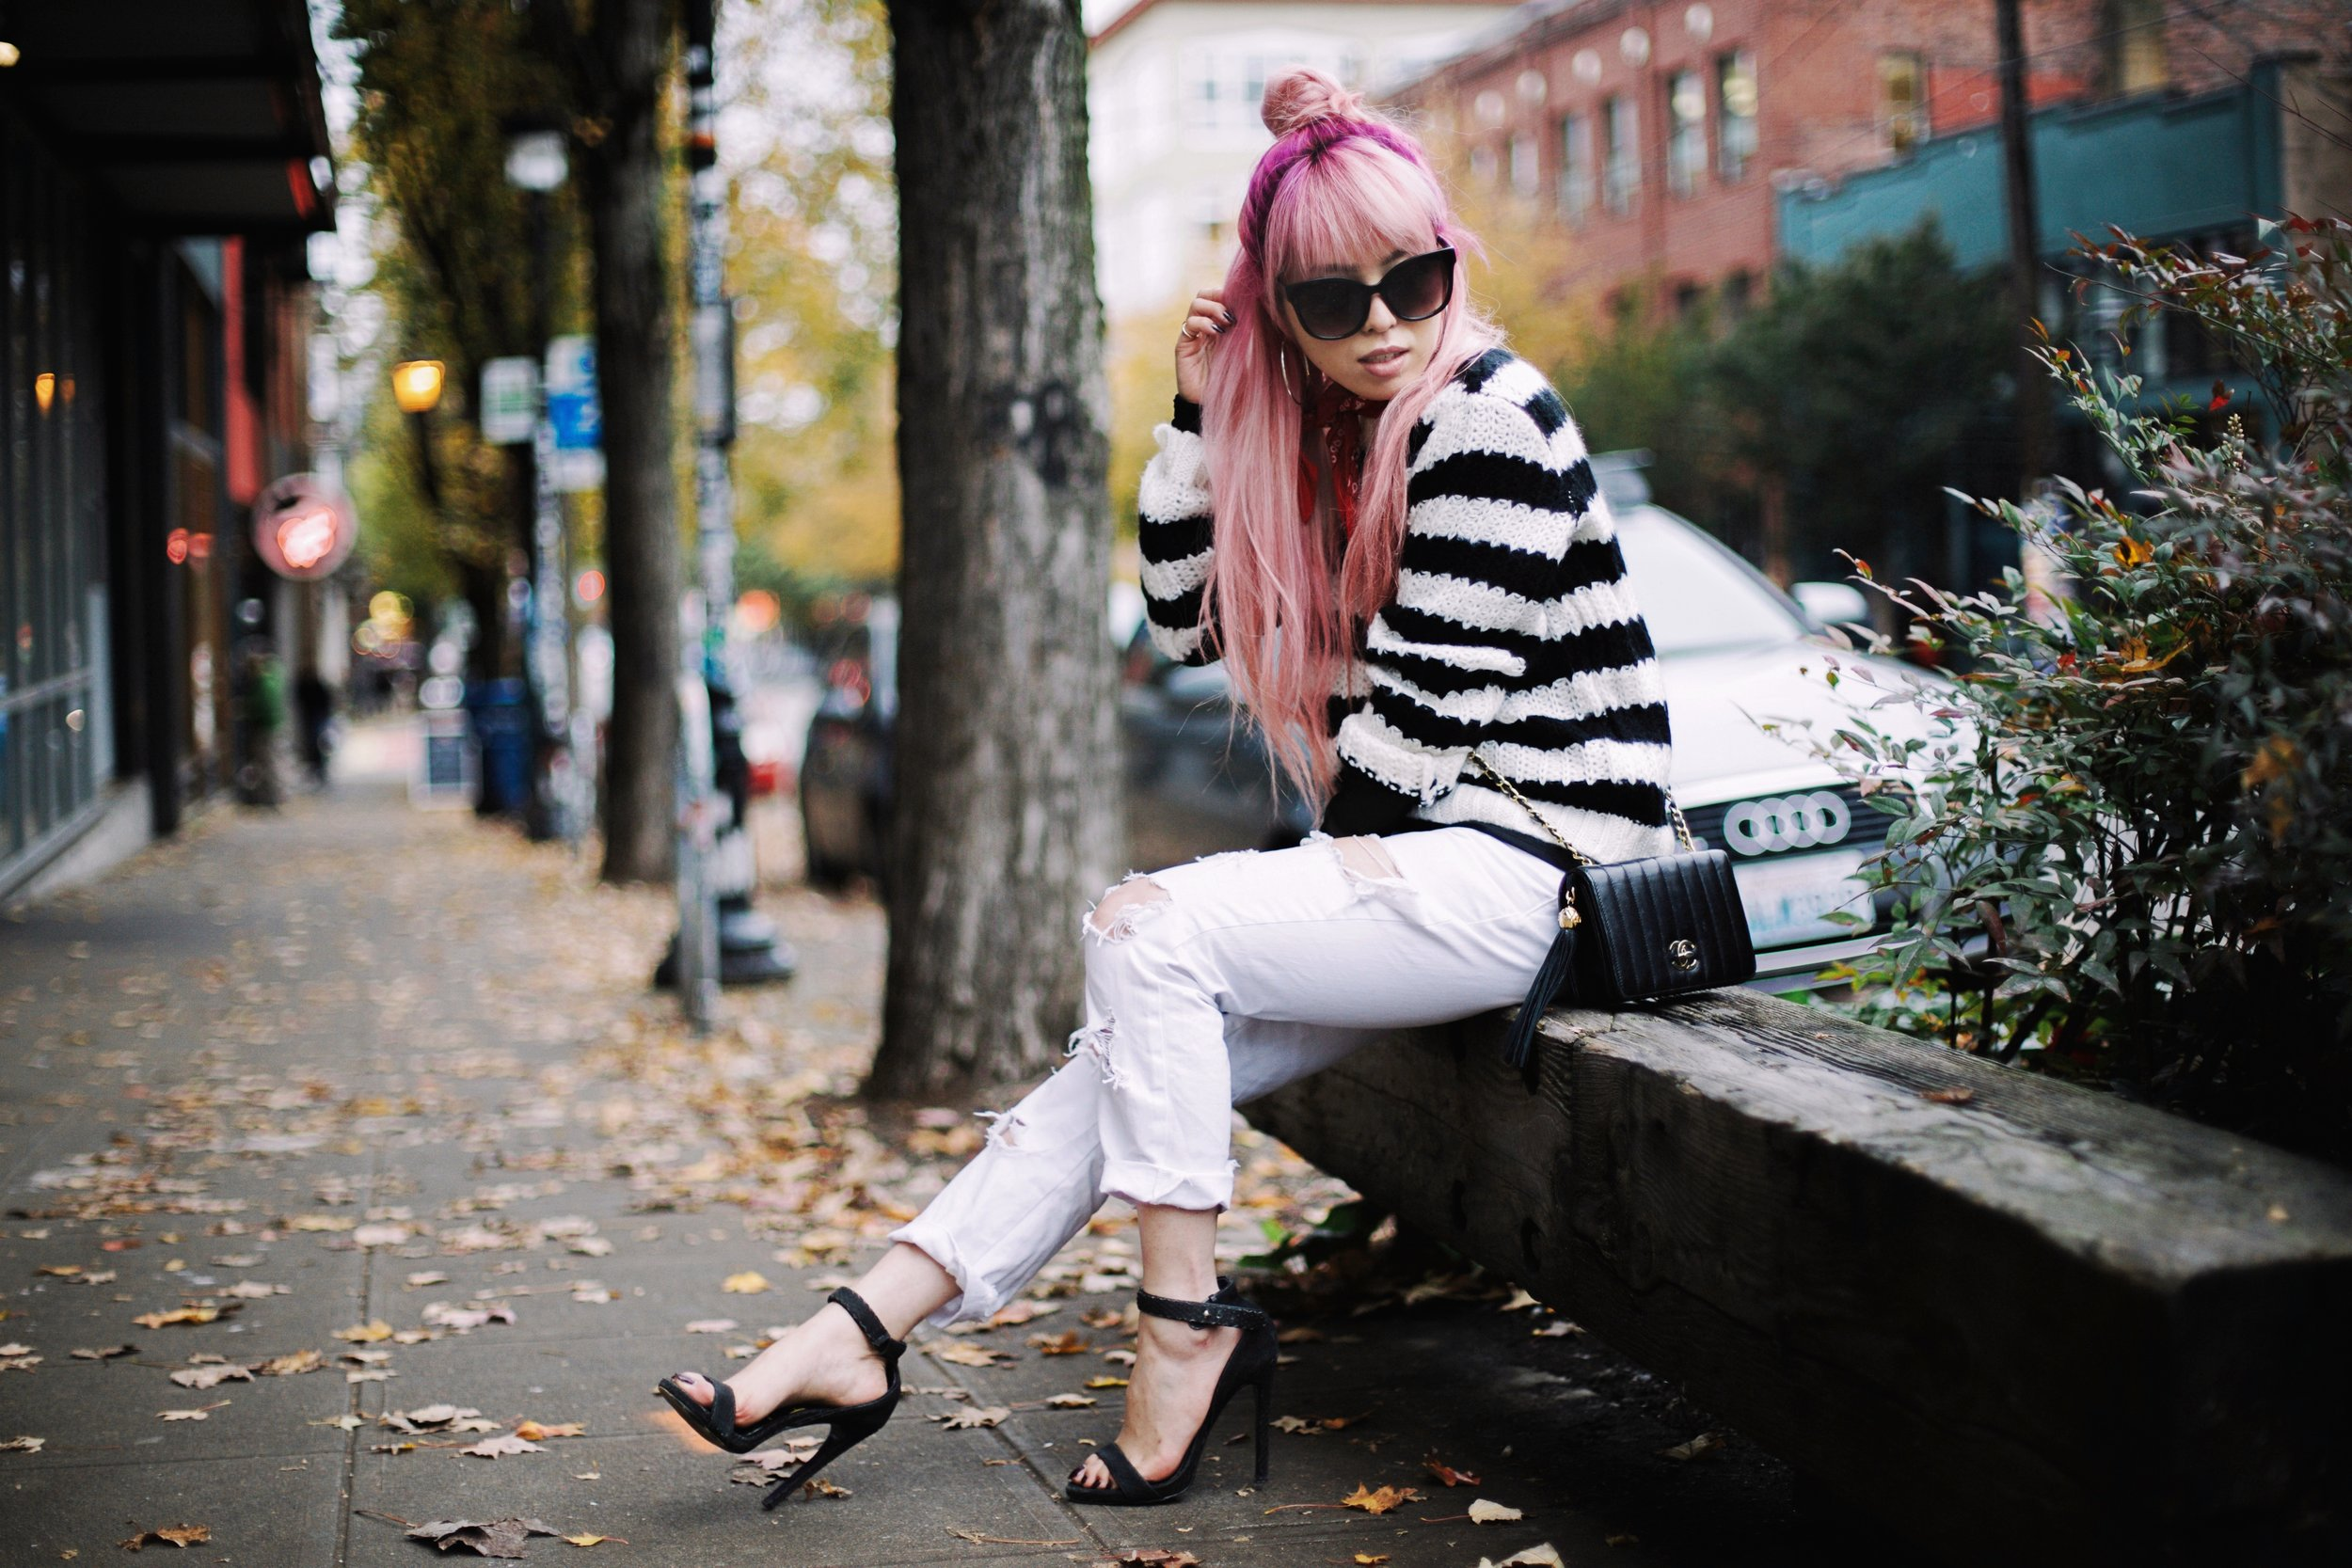 Urban Outfitters Sunglasses & Red bandana-Who What Wear Striped Crew Sweater-Target-Zara Distressed white boyfriend Jeans & Black Sheer Top-Vintage Chanel Crossbody Bag-ASOS Ankle Strap Sandals-Christian Paul Grid White Watch-Aika's Love Closet-Seattle Fashion Blogger-Japanese-Pink Hair-Half Top Knot Hair 19